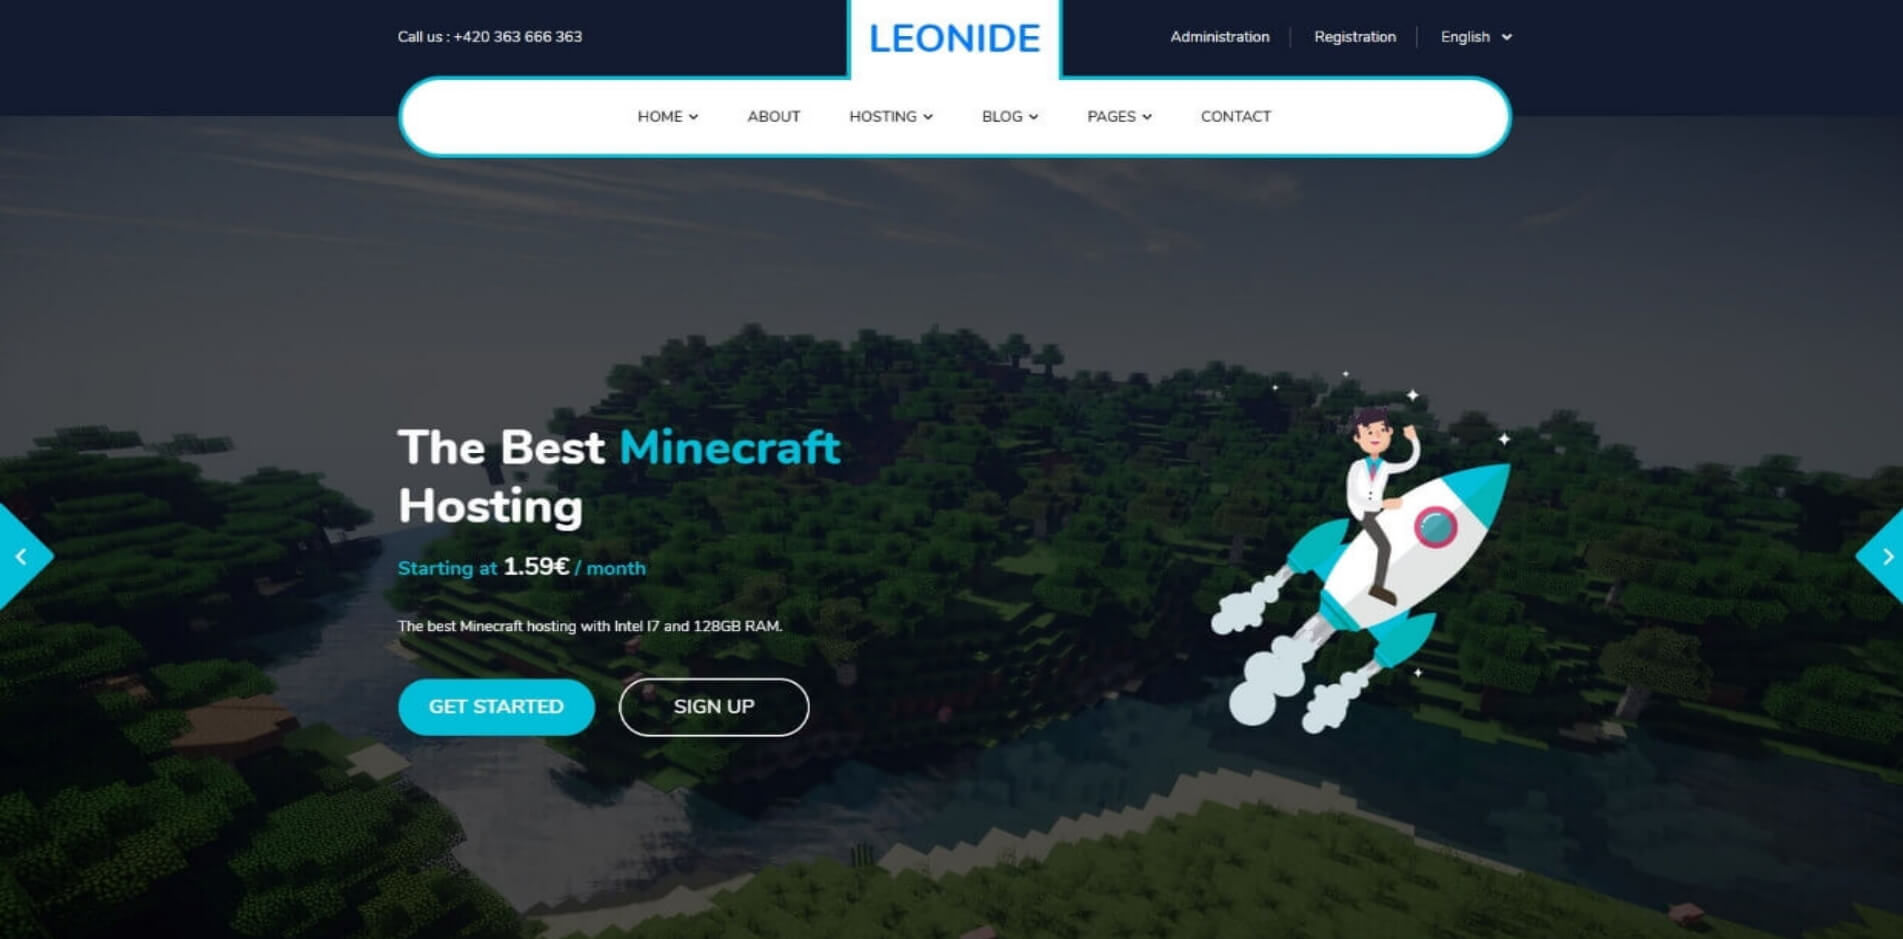 Leonide - Gamehosting (V.1)